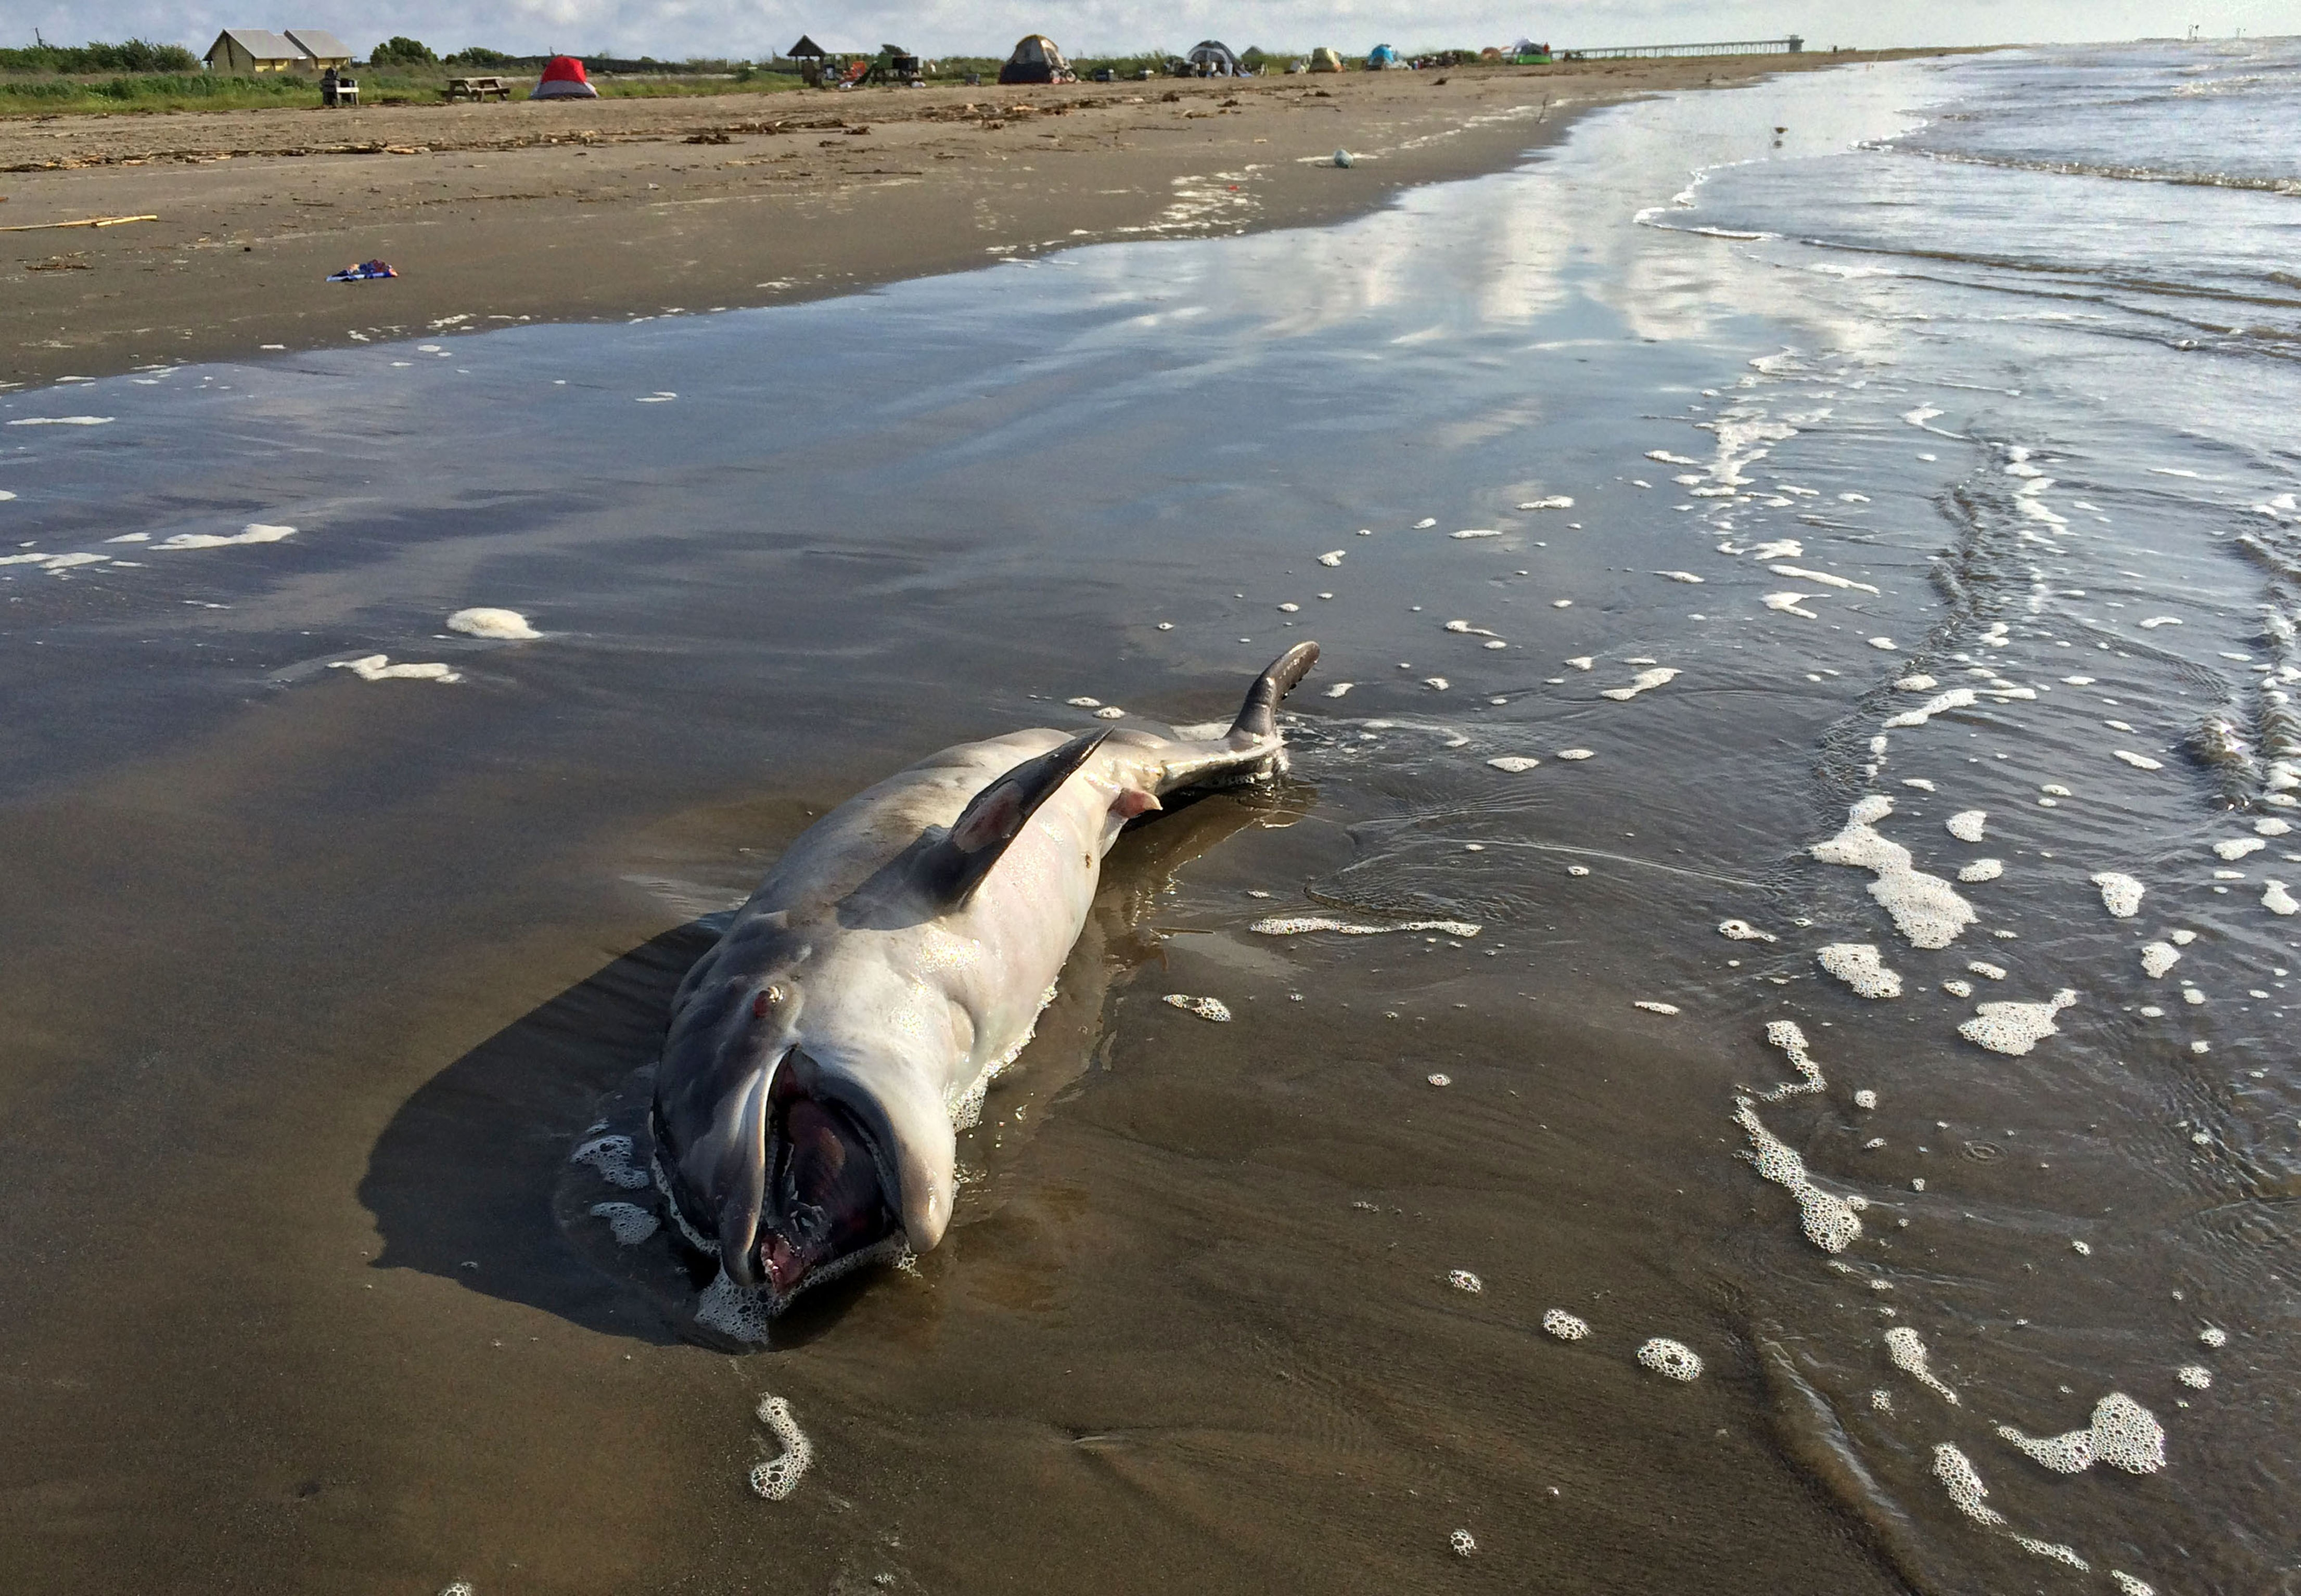 Scientists link dolphin deaths in Gulf to 2010 BP spill